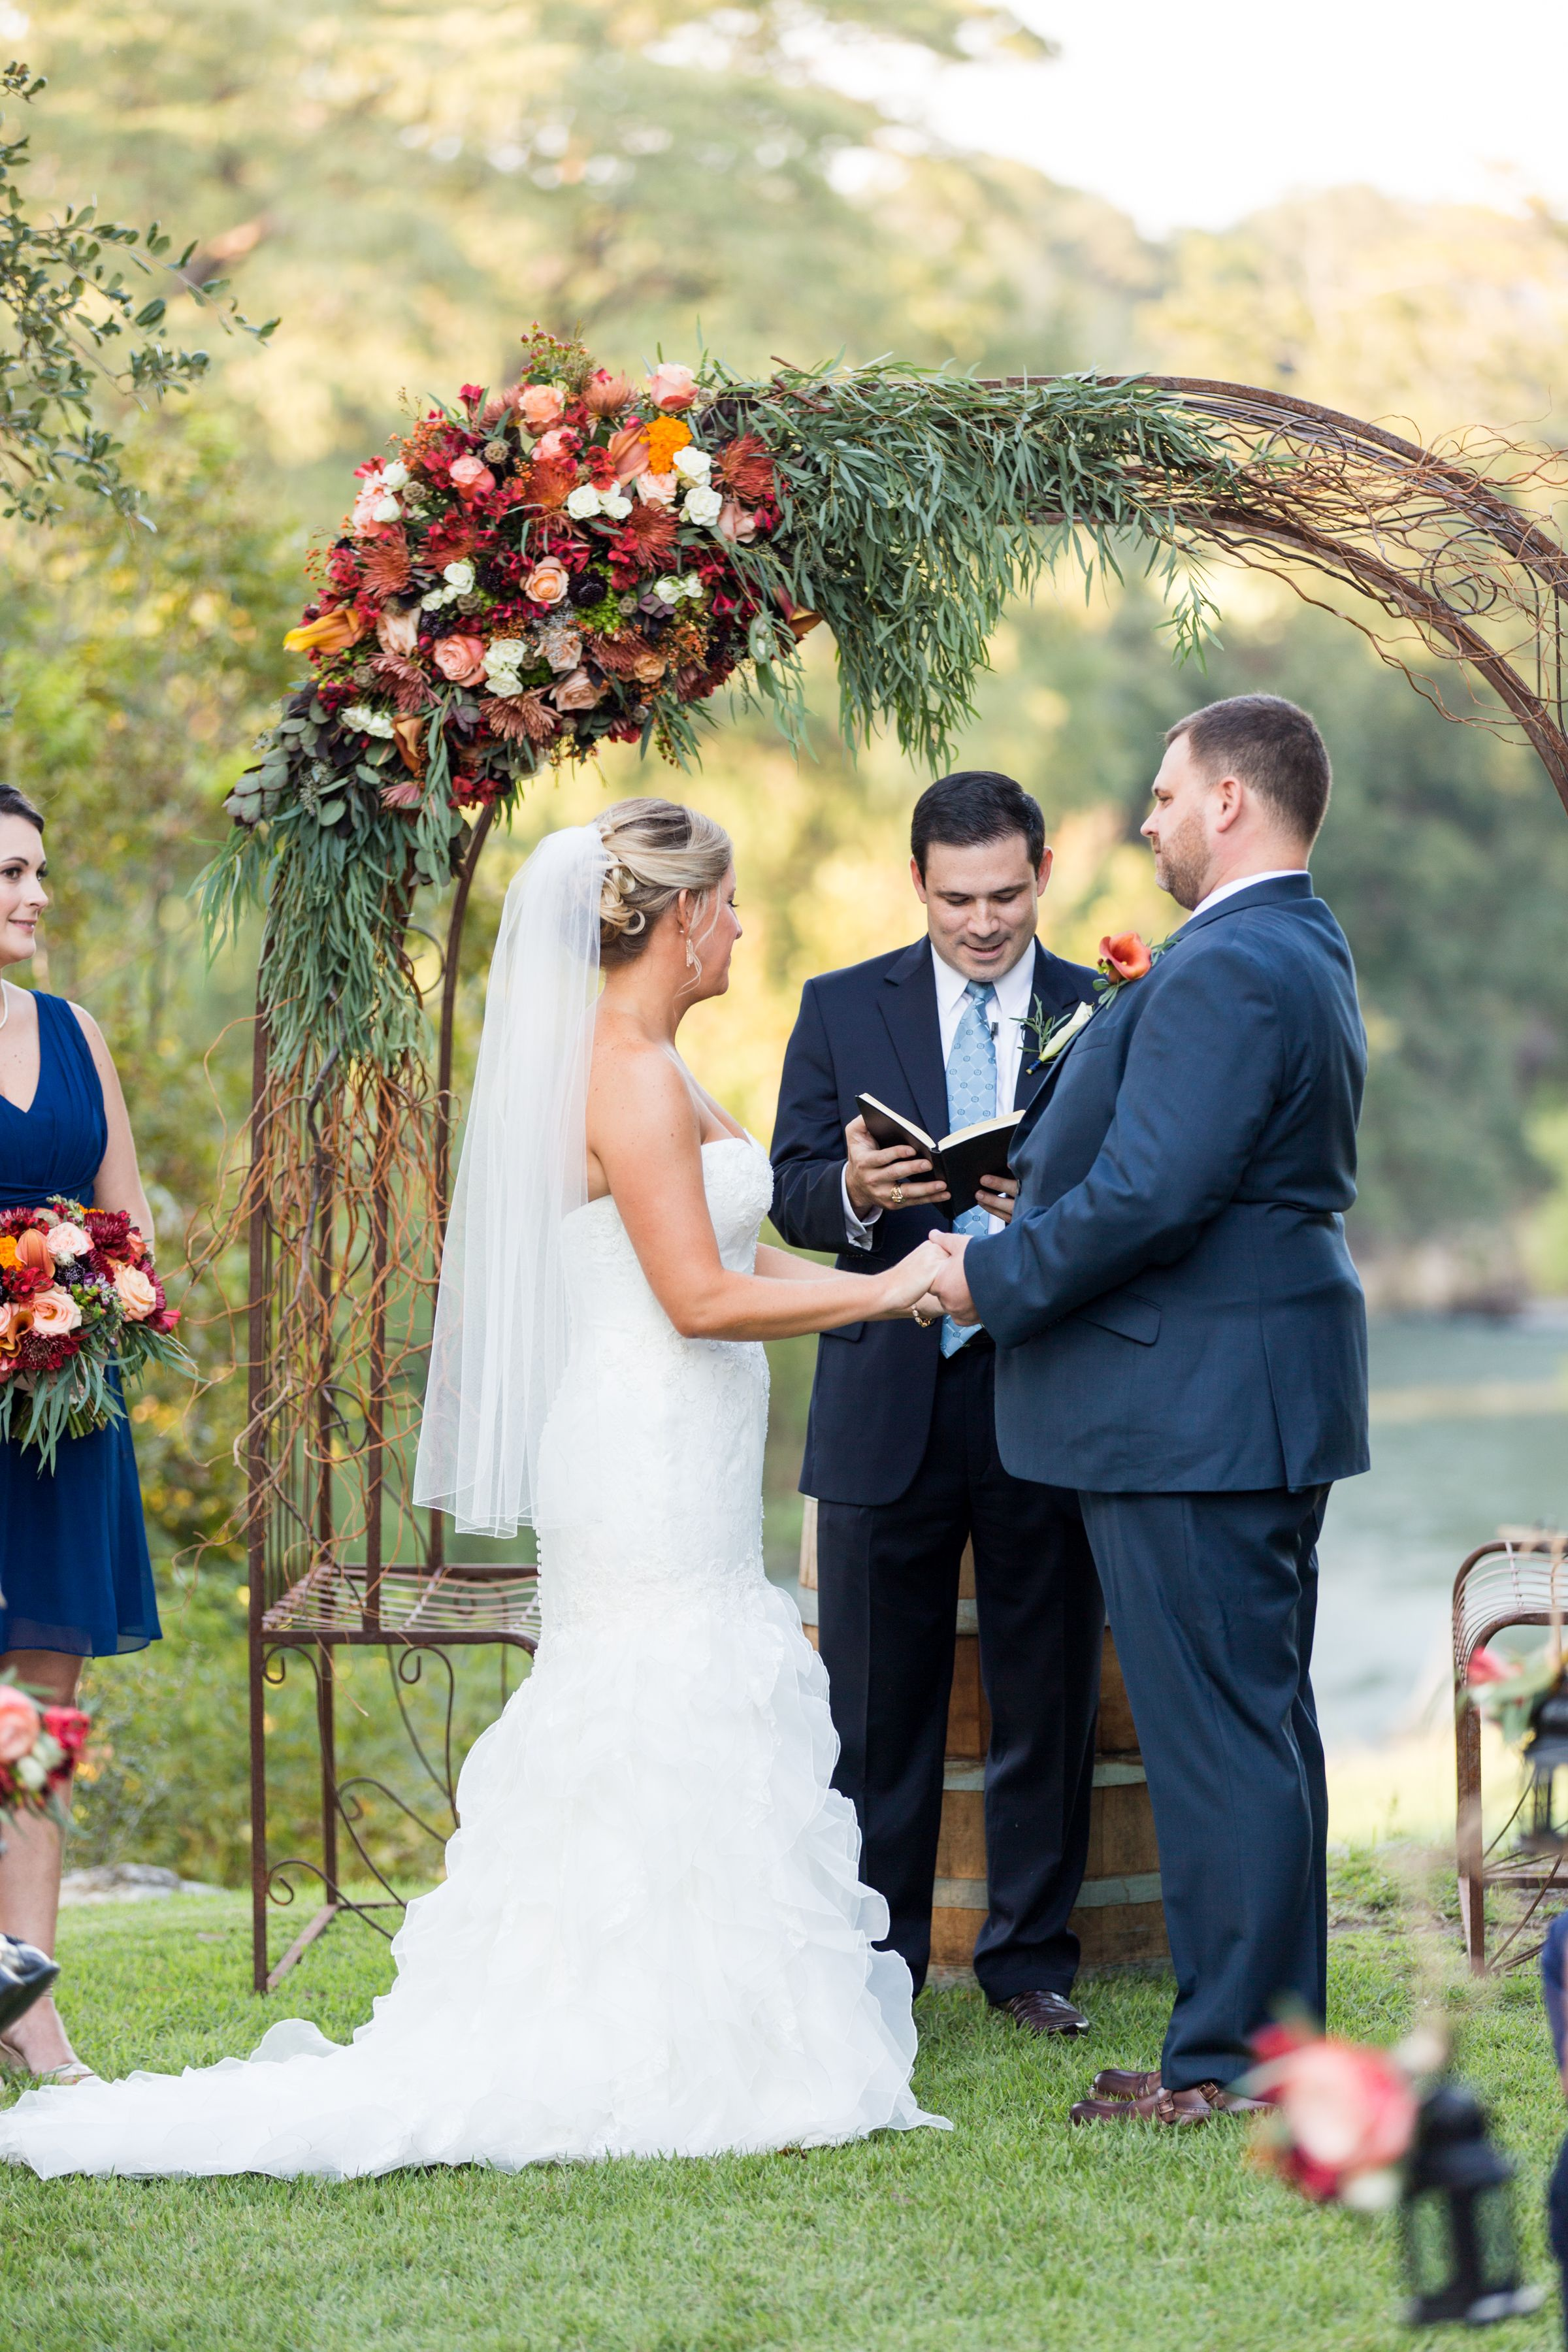 The Texas hill country wedding, Hill country wedding venues